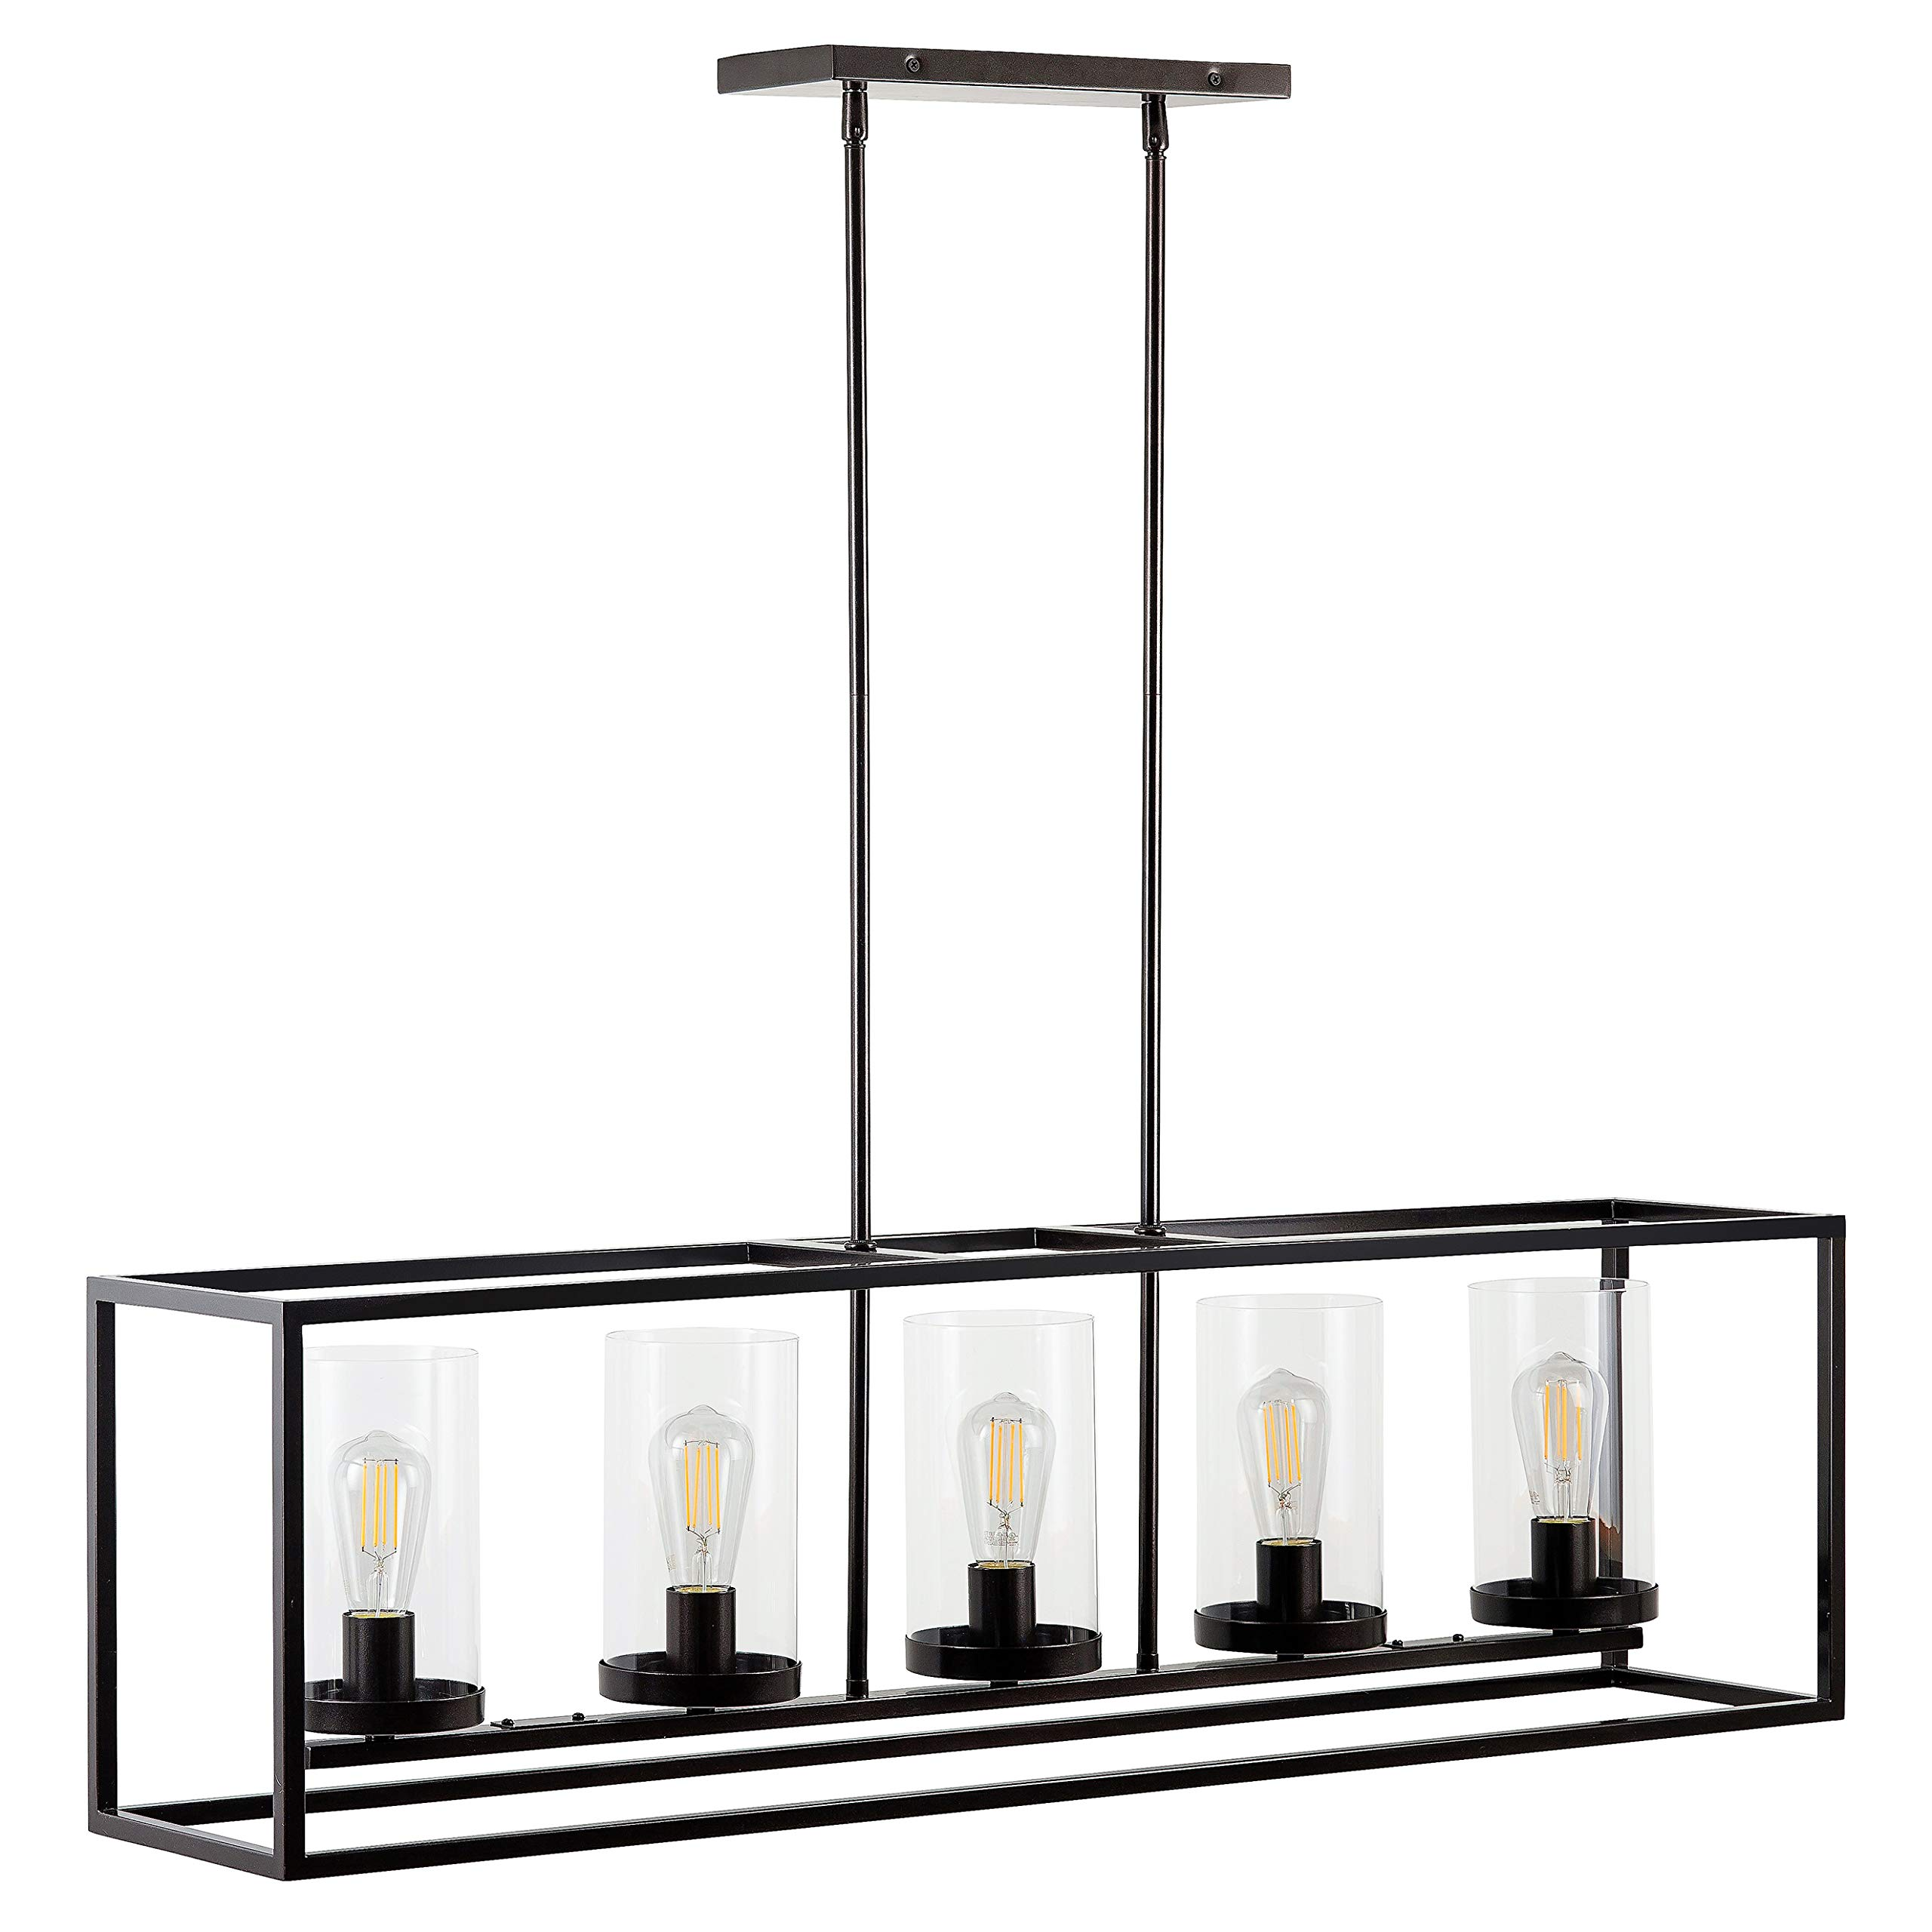 Verona 5 Light Kitchen Island Pendant - Bronze w/LED Bulbs - Linea di Liara LL-CH17-6DB-LED